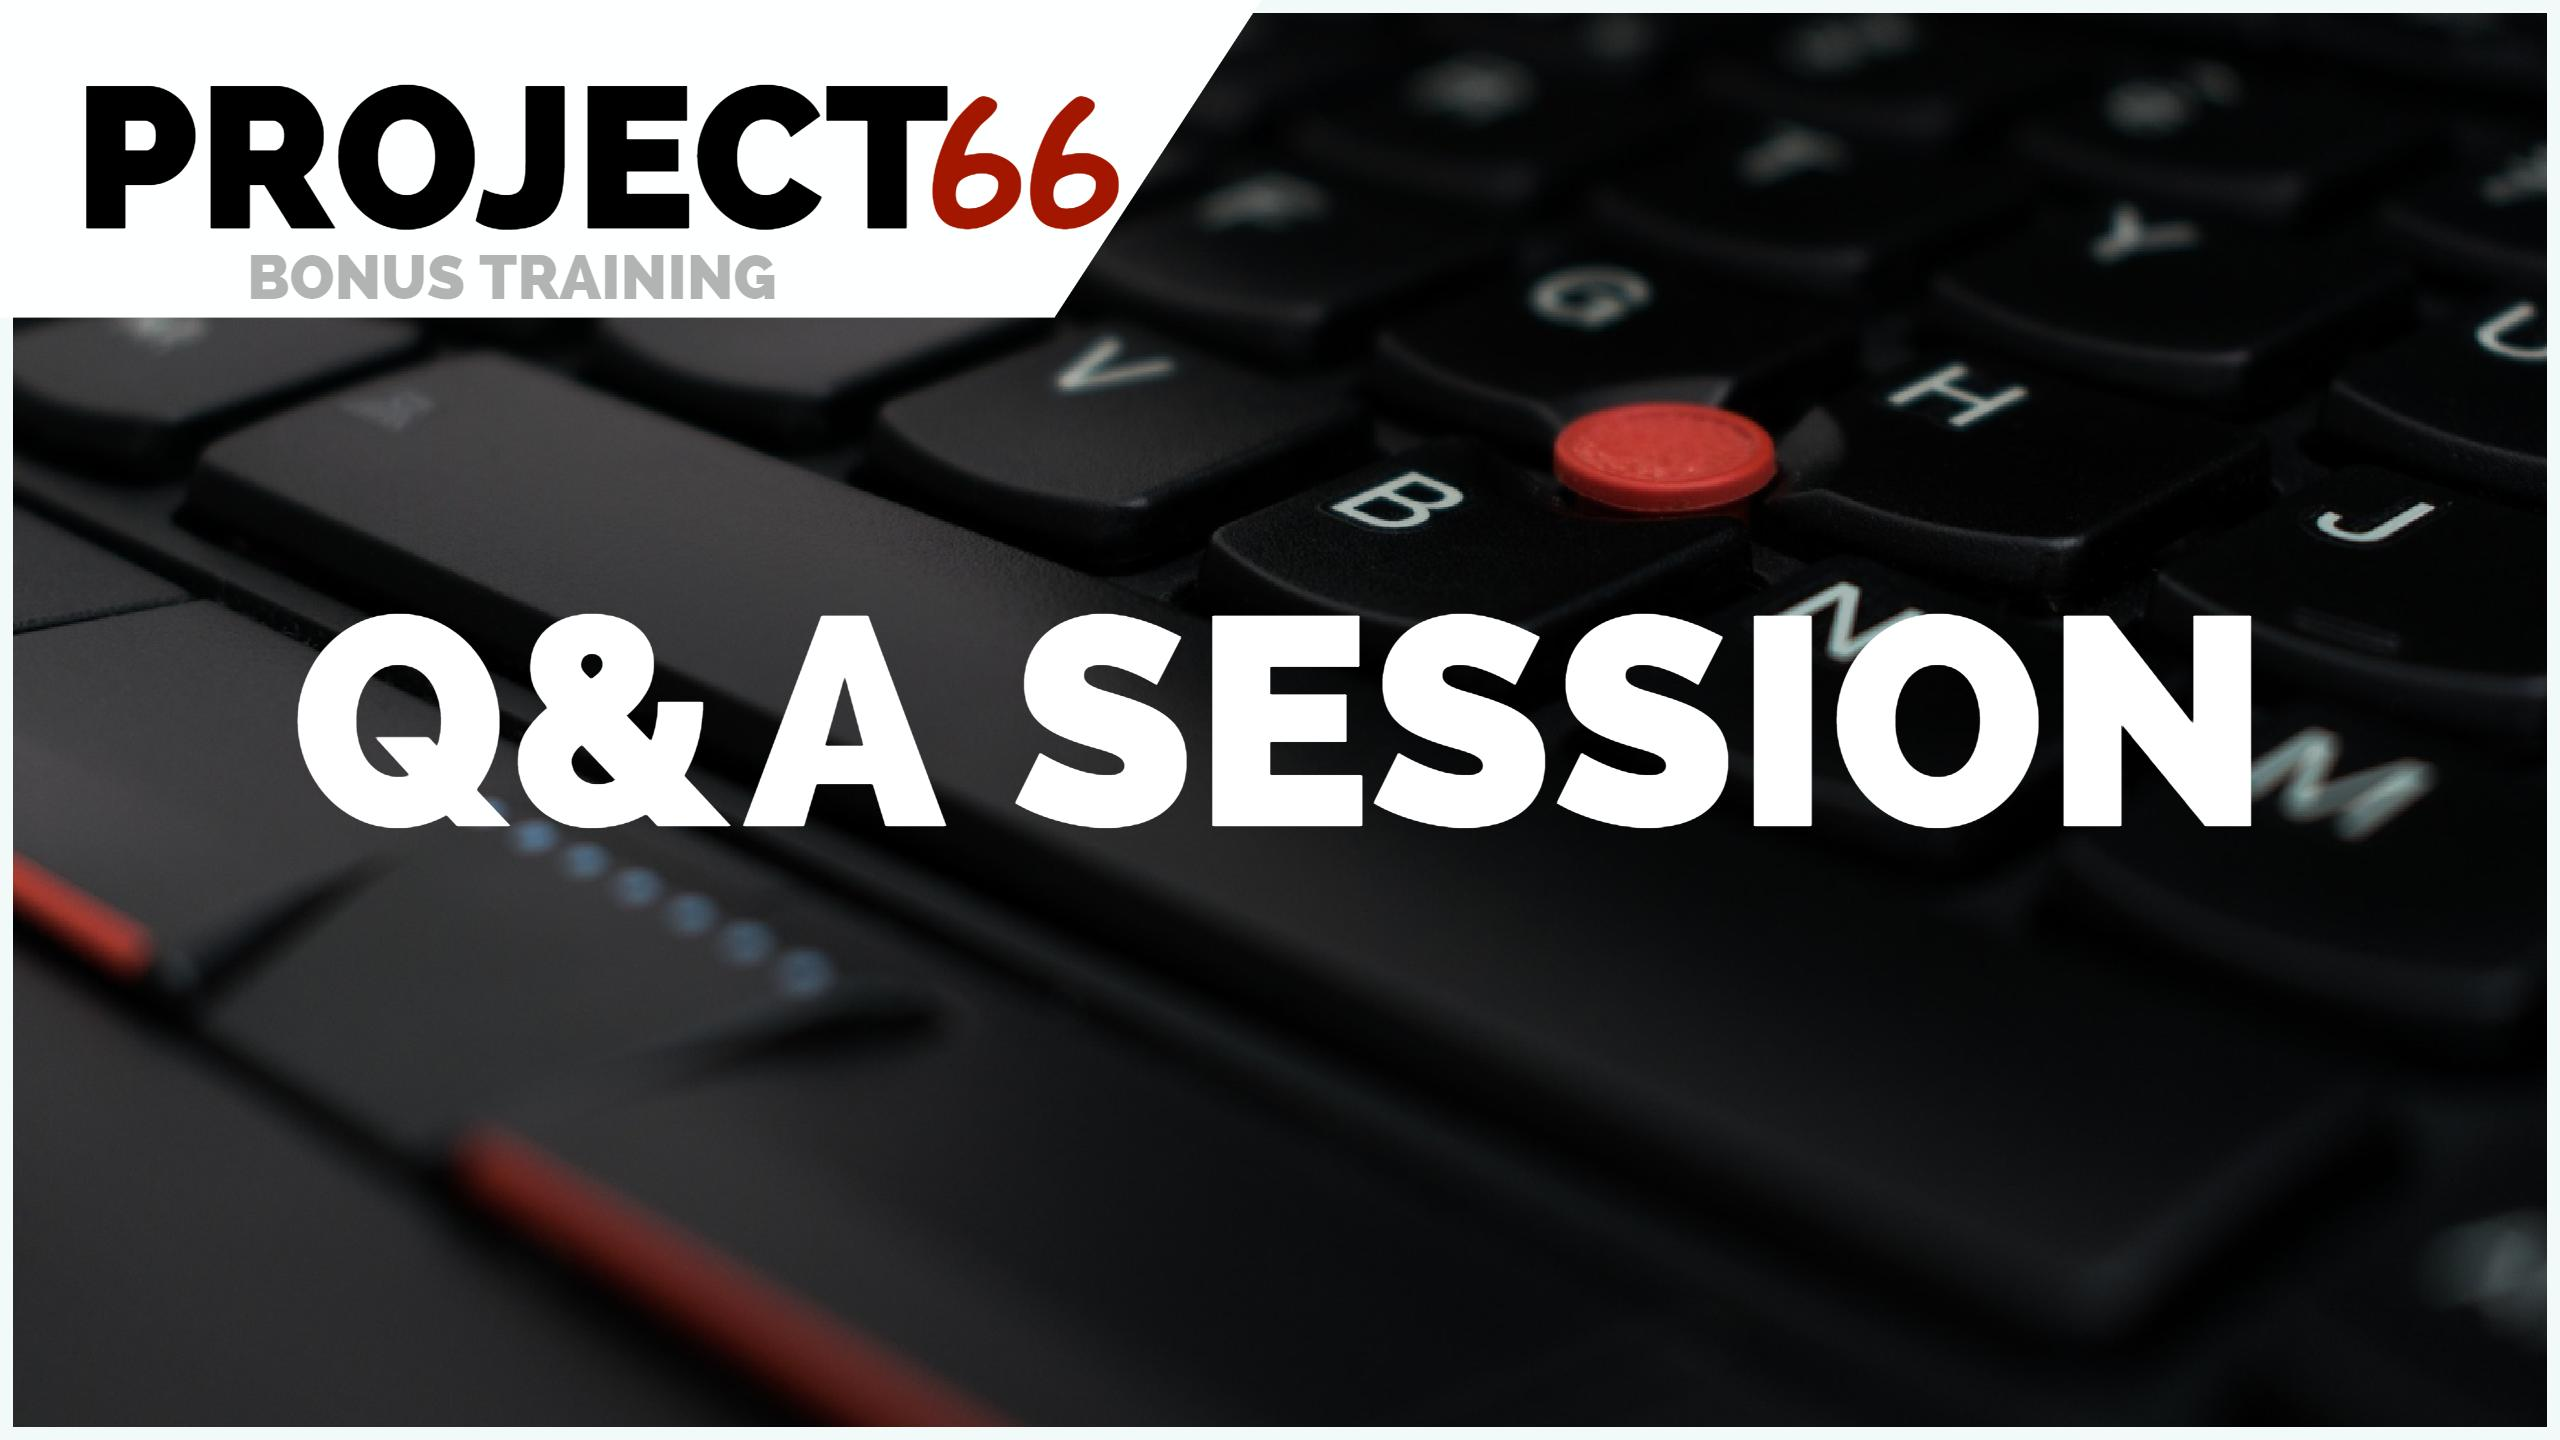 Project66 Q&A Session